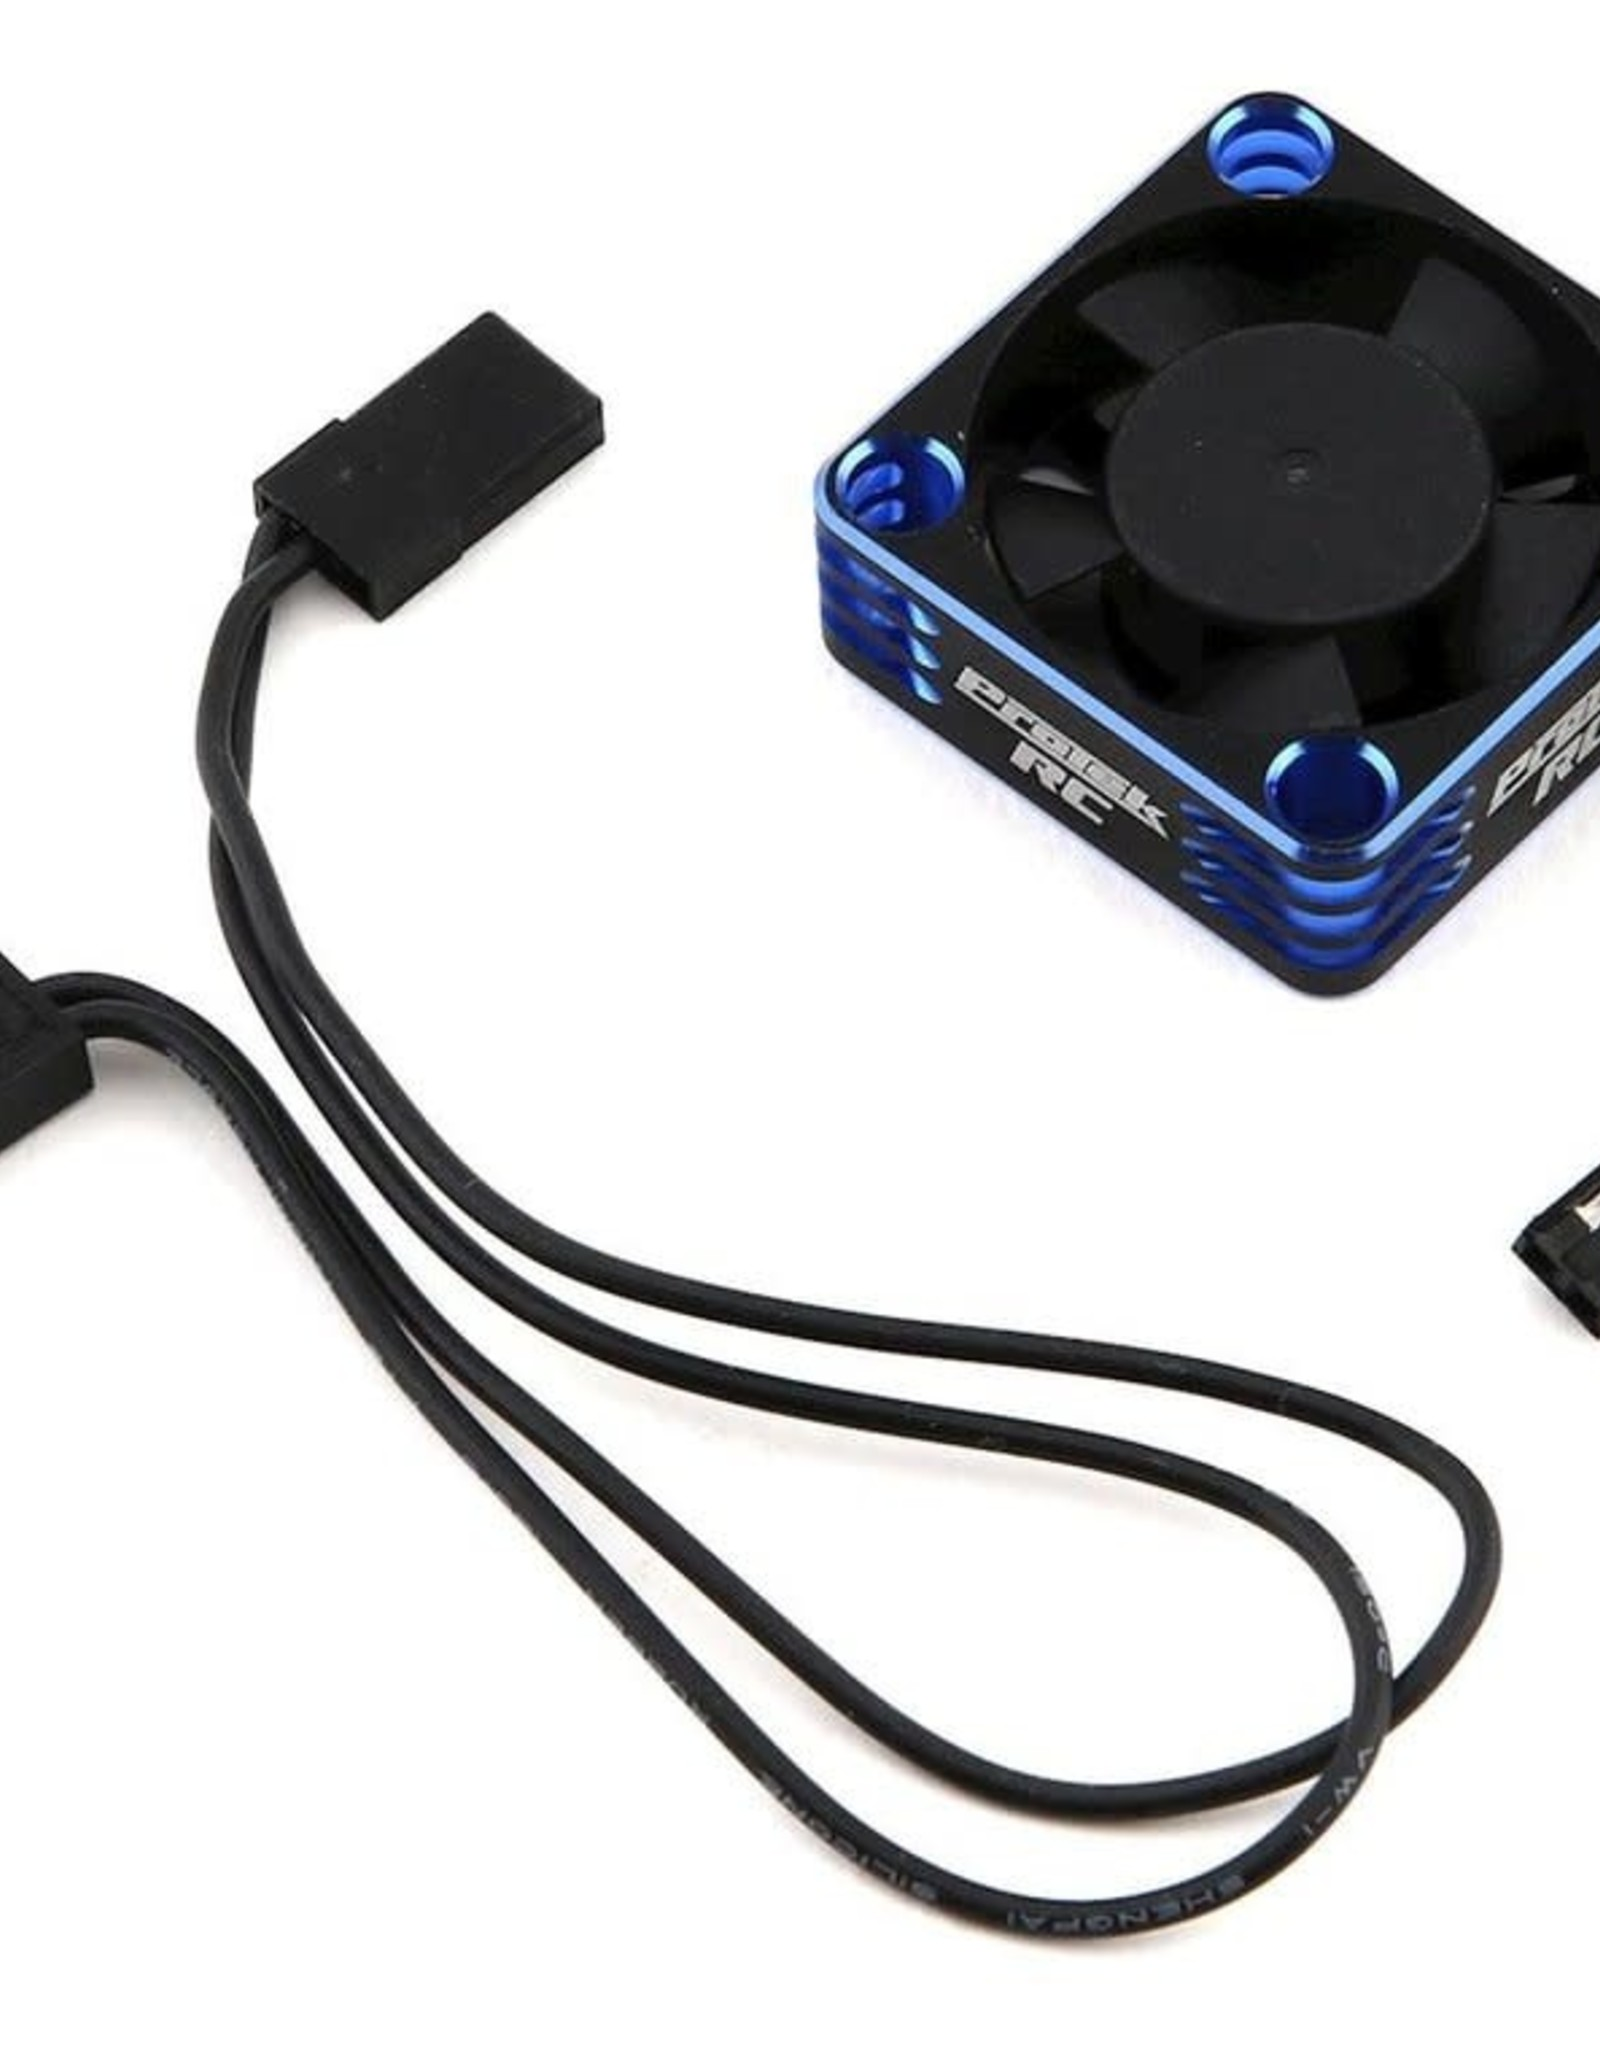 Protek RC ProTek RC 30x30x10mm Aluminum High Speed HV Cooling Fan (blue/Black)